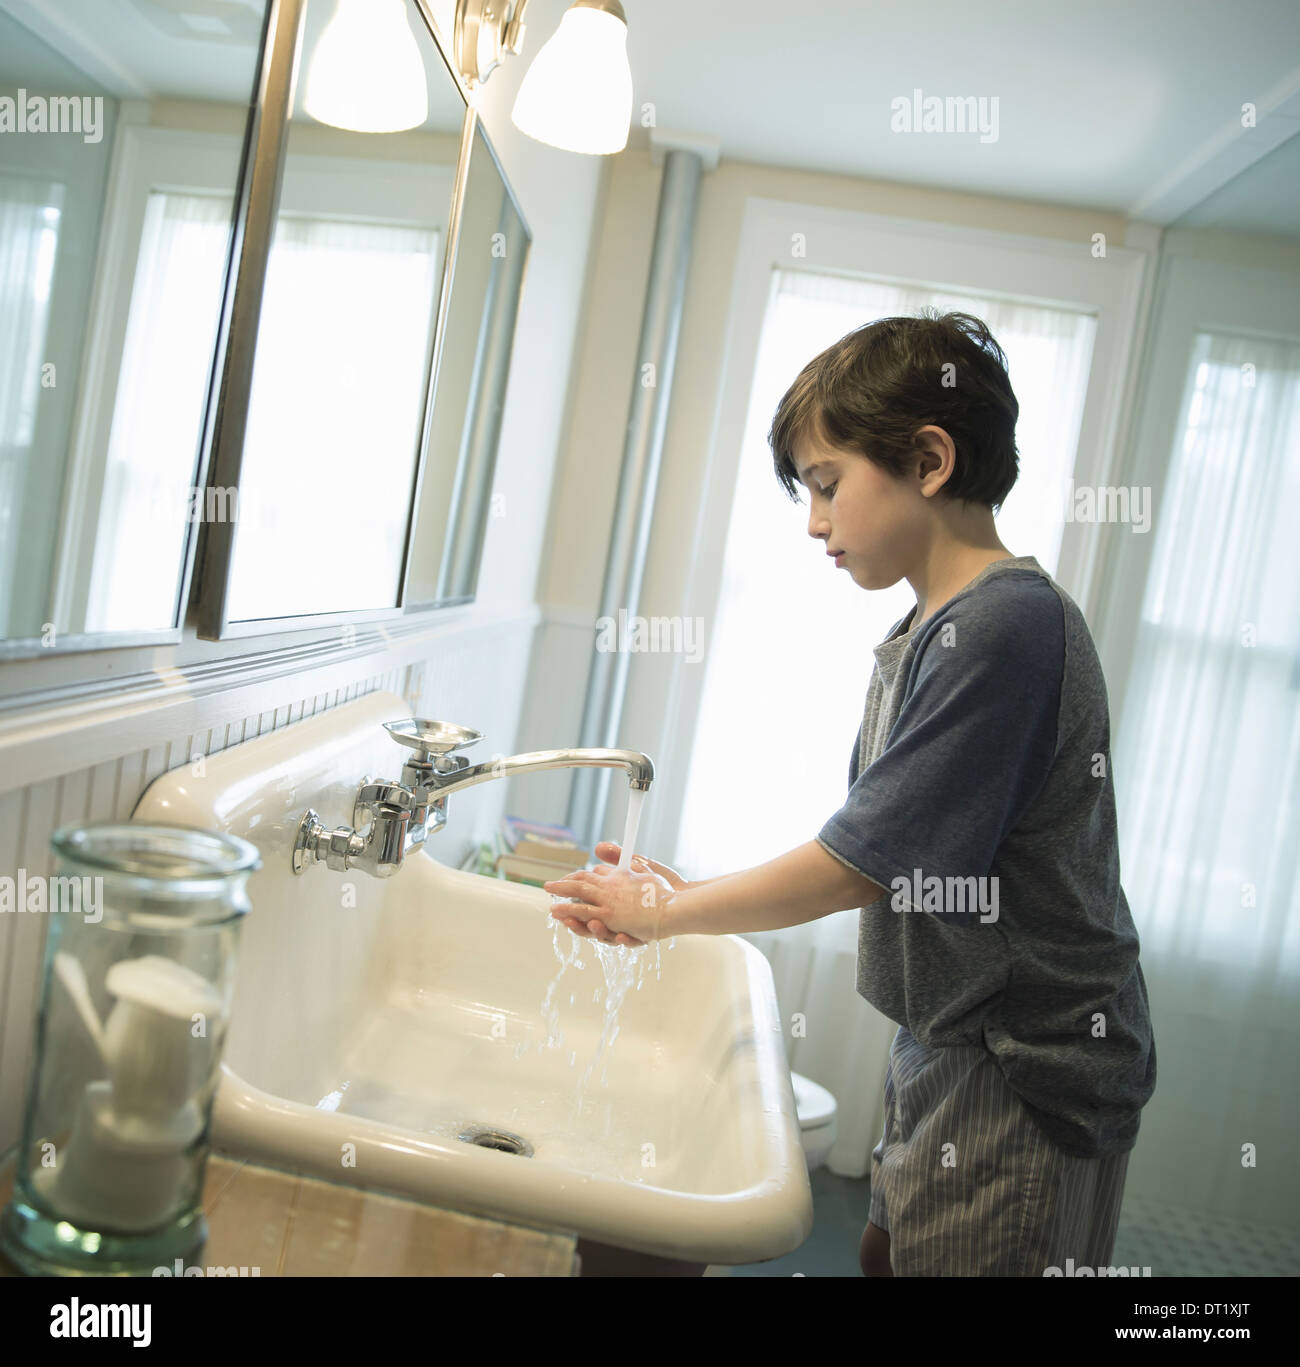 A boy standing in the bathroom washing his hands under the tap - Stock Image